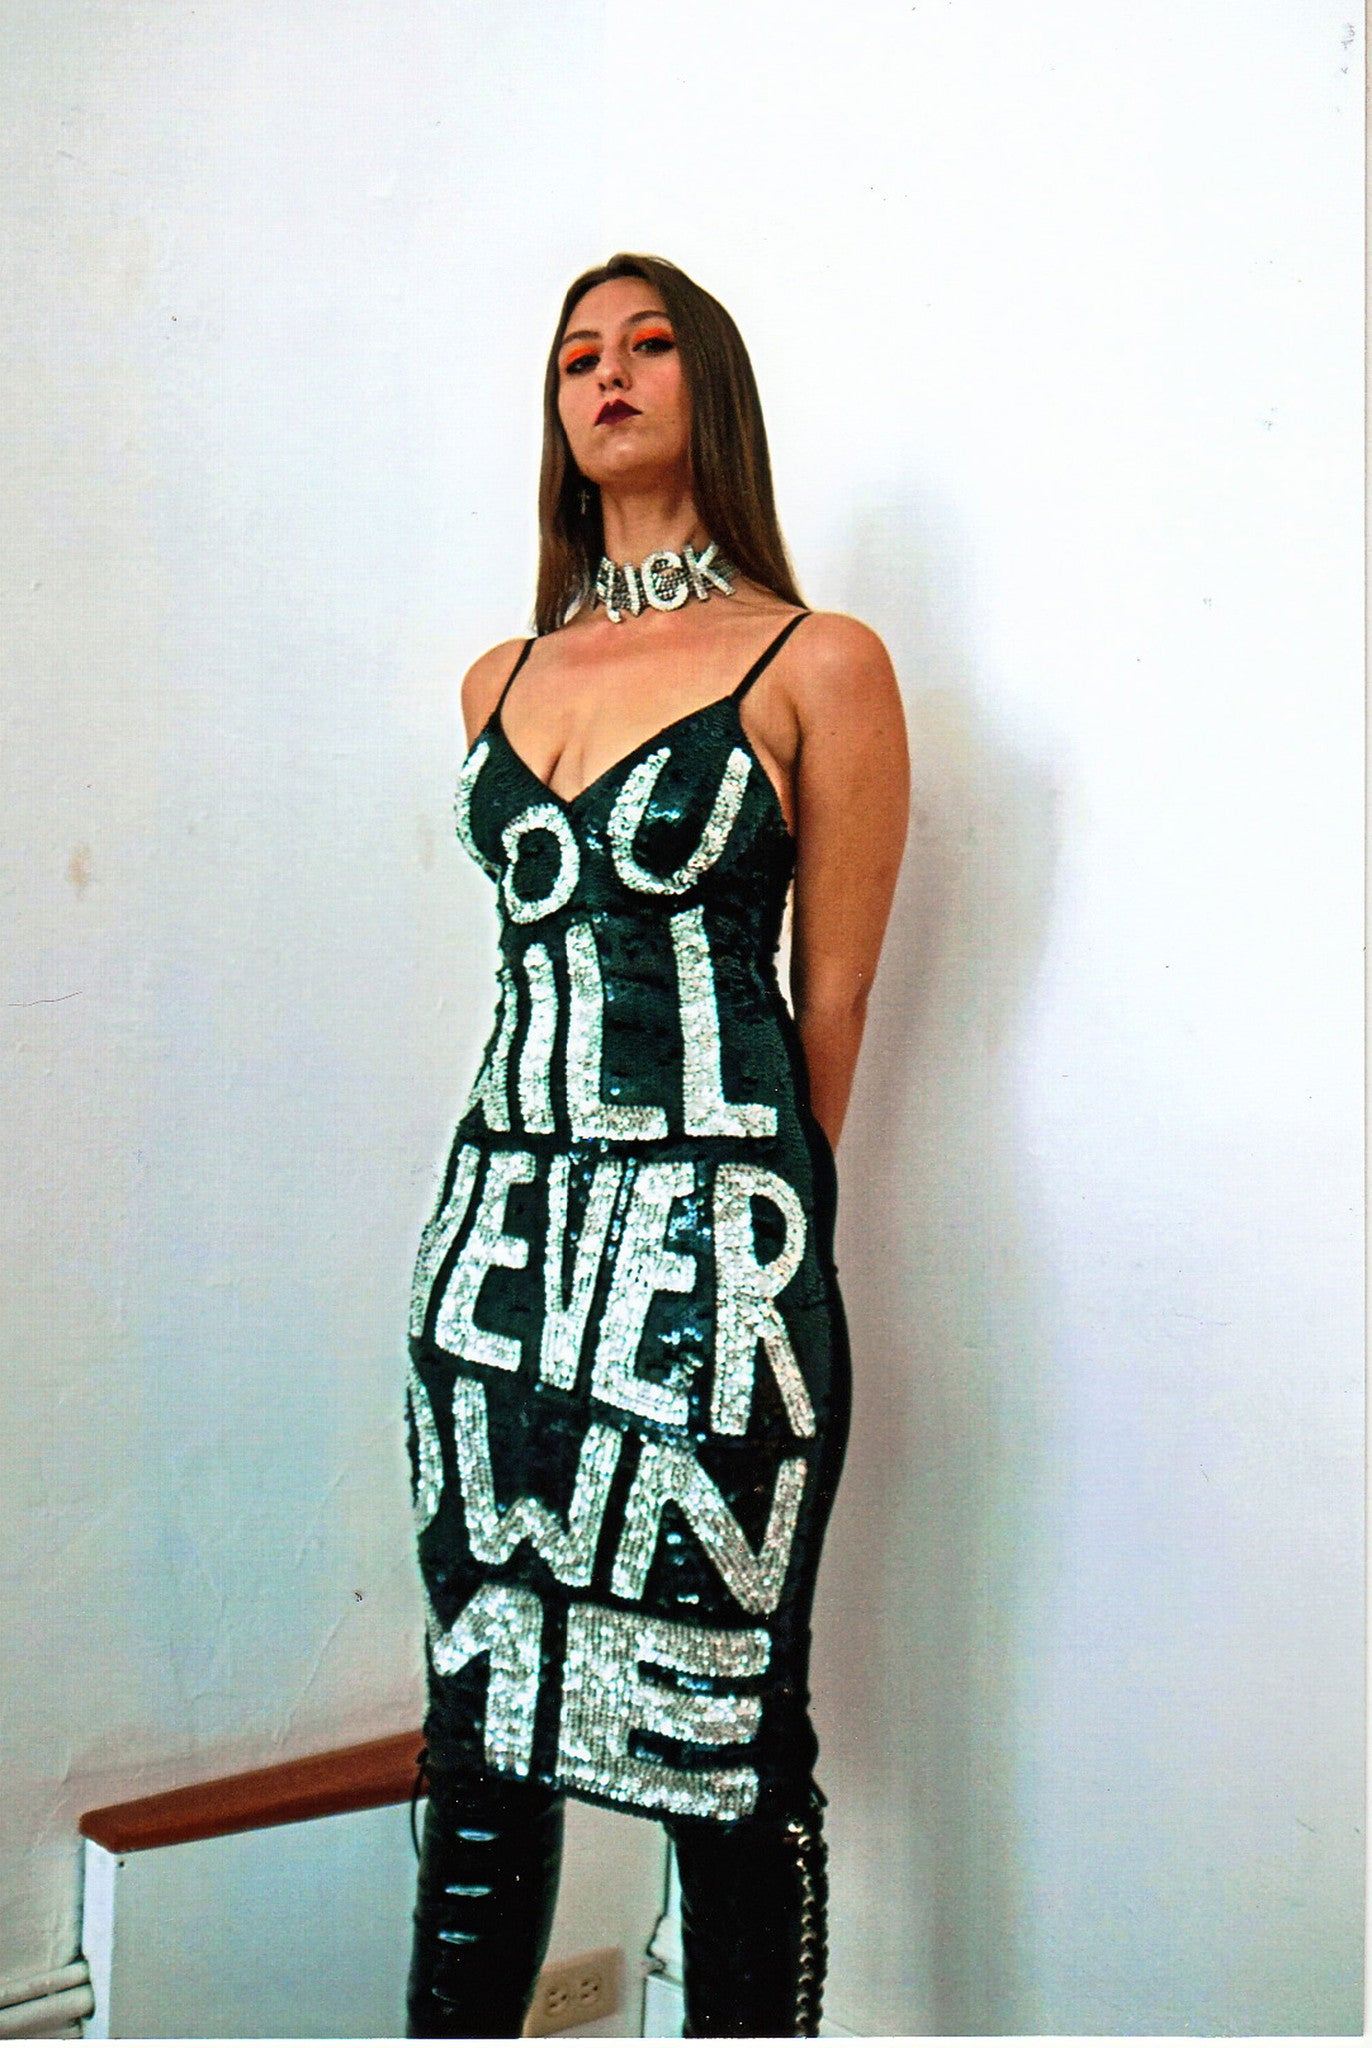 'YOU WILL NEVER OWN ME' Bralet Dress Black